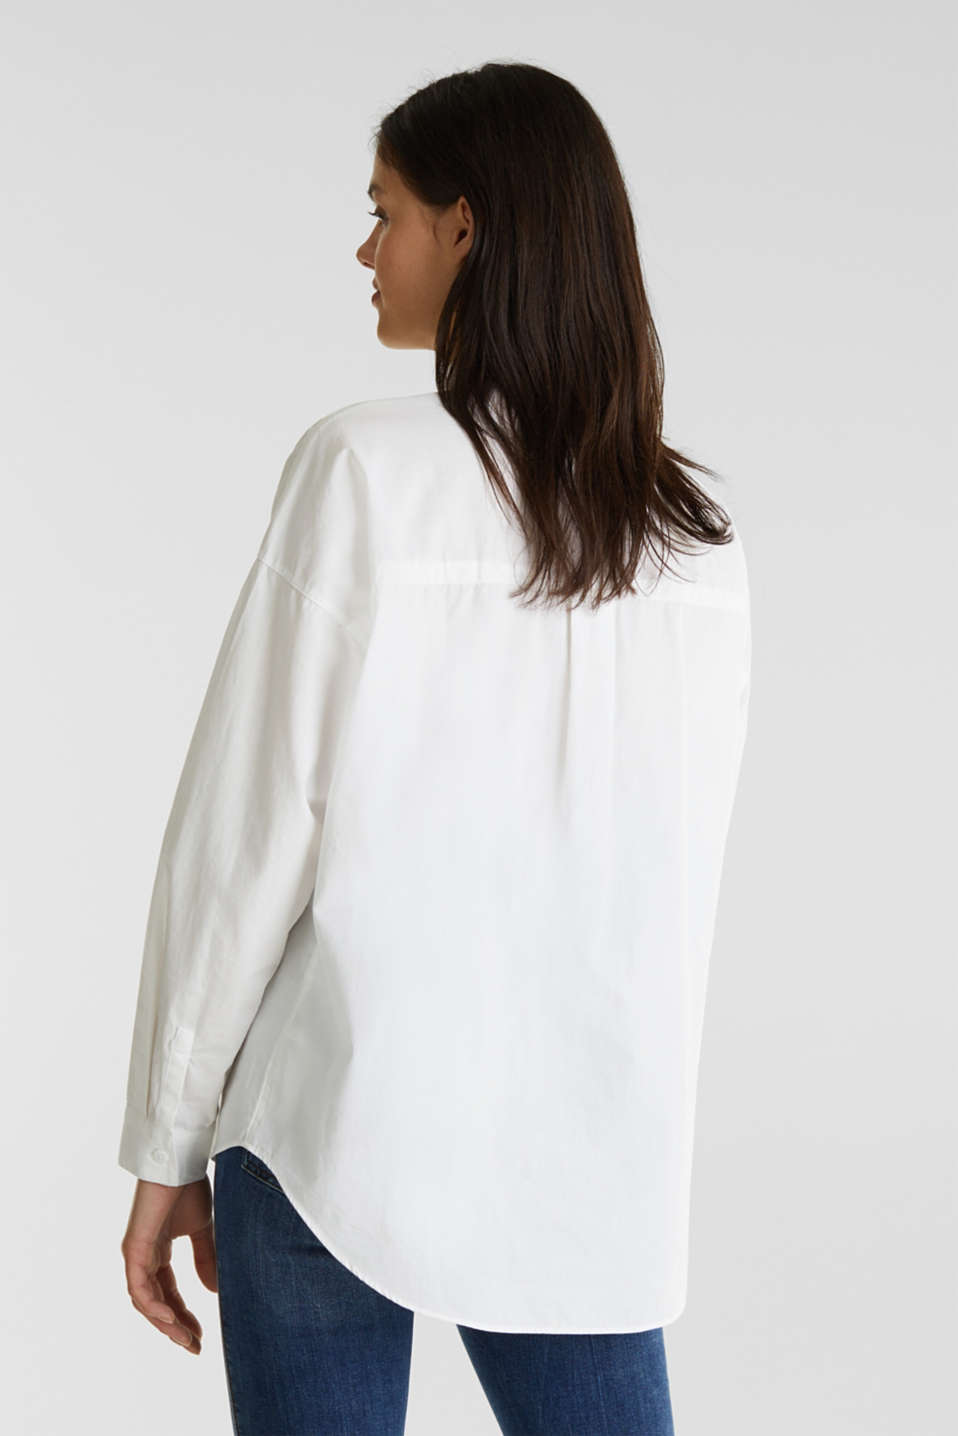 Oversized blouse with a stand-up collar, 100% cotton, WHITE, detail image number 2